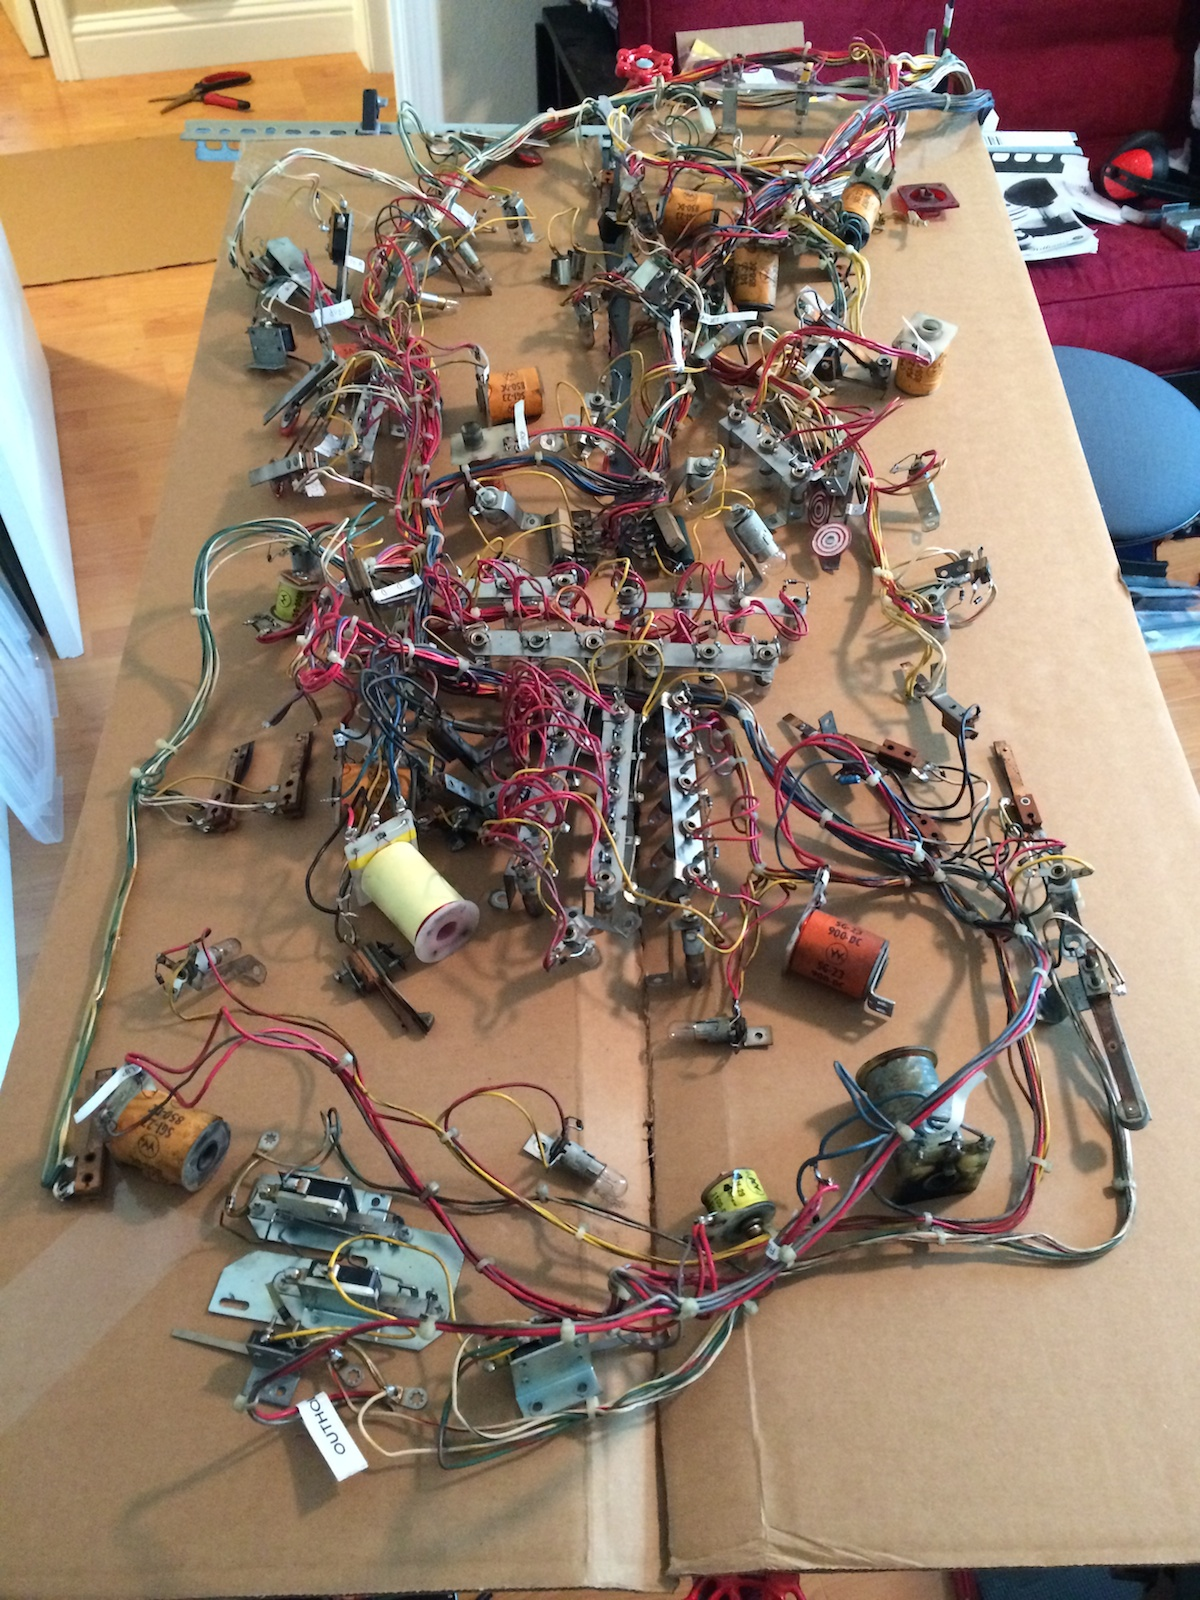 transferred space shuttle pinball wiring harness from old to new Wire Harness Cartoon